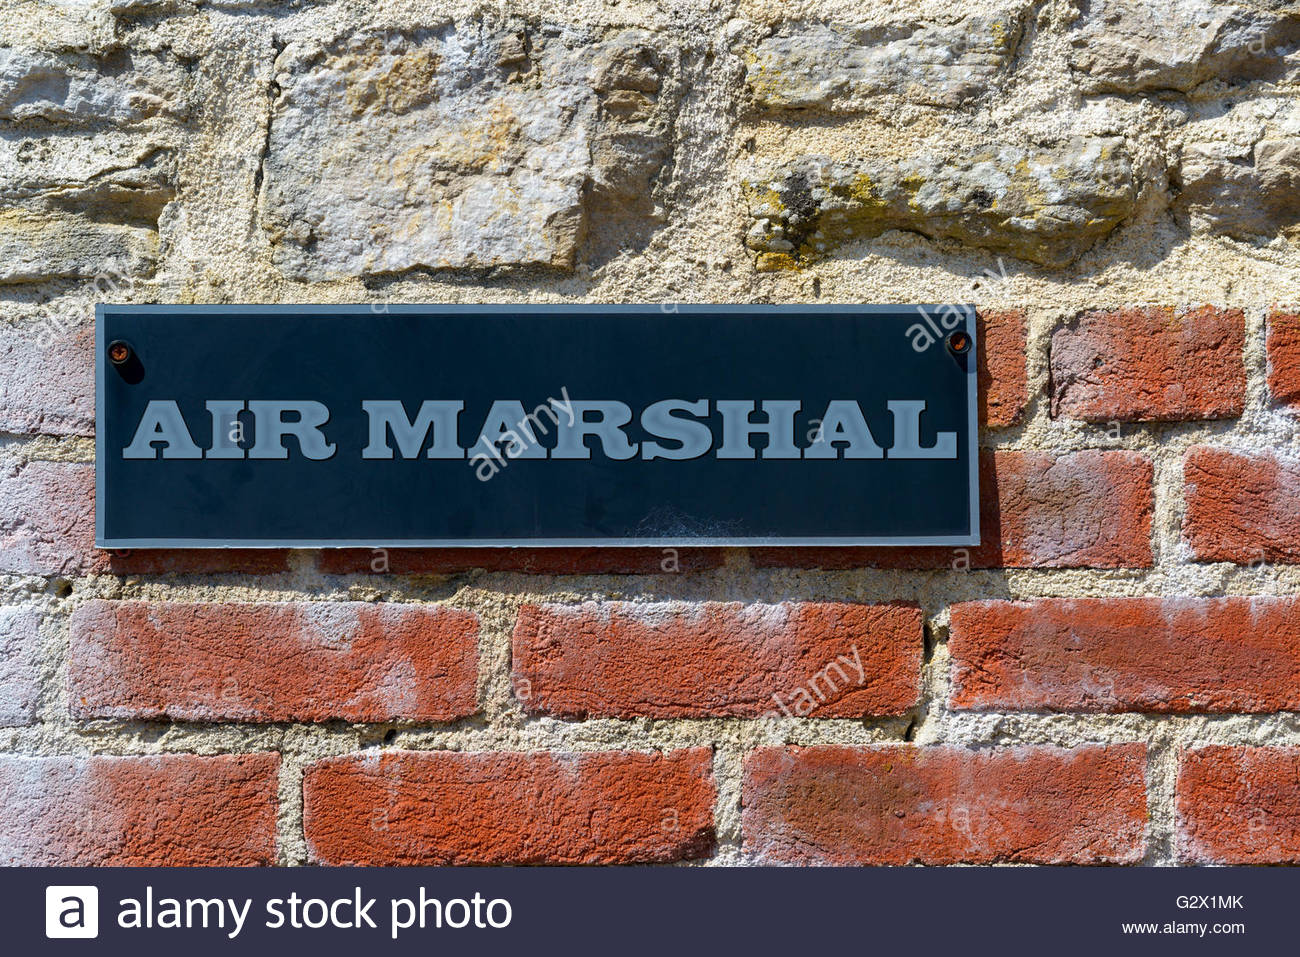 Air Marshal Service Stock Photos & Air Marshal Service Stock Images ...